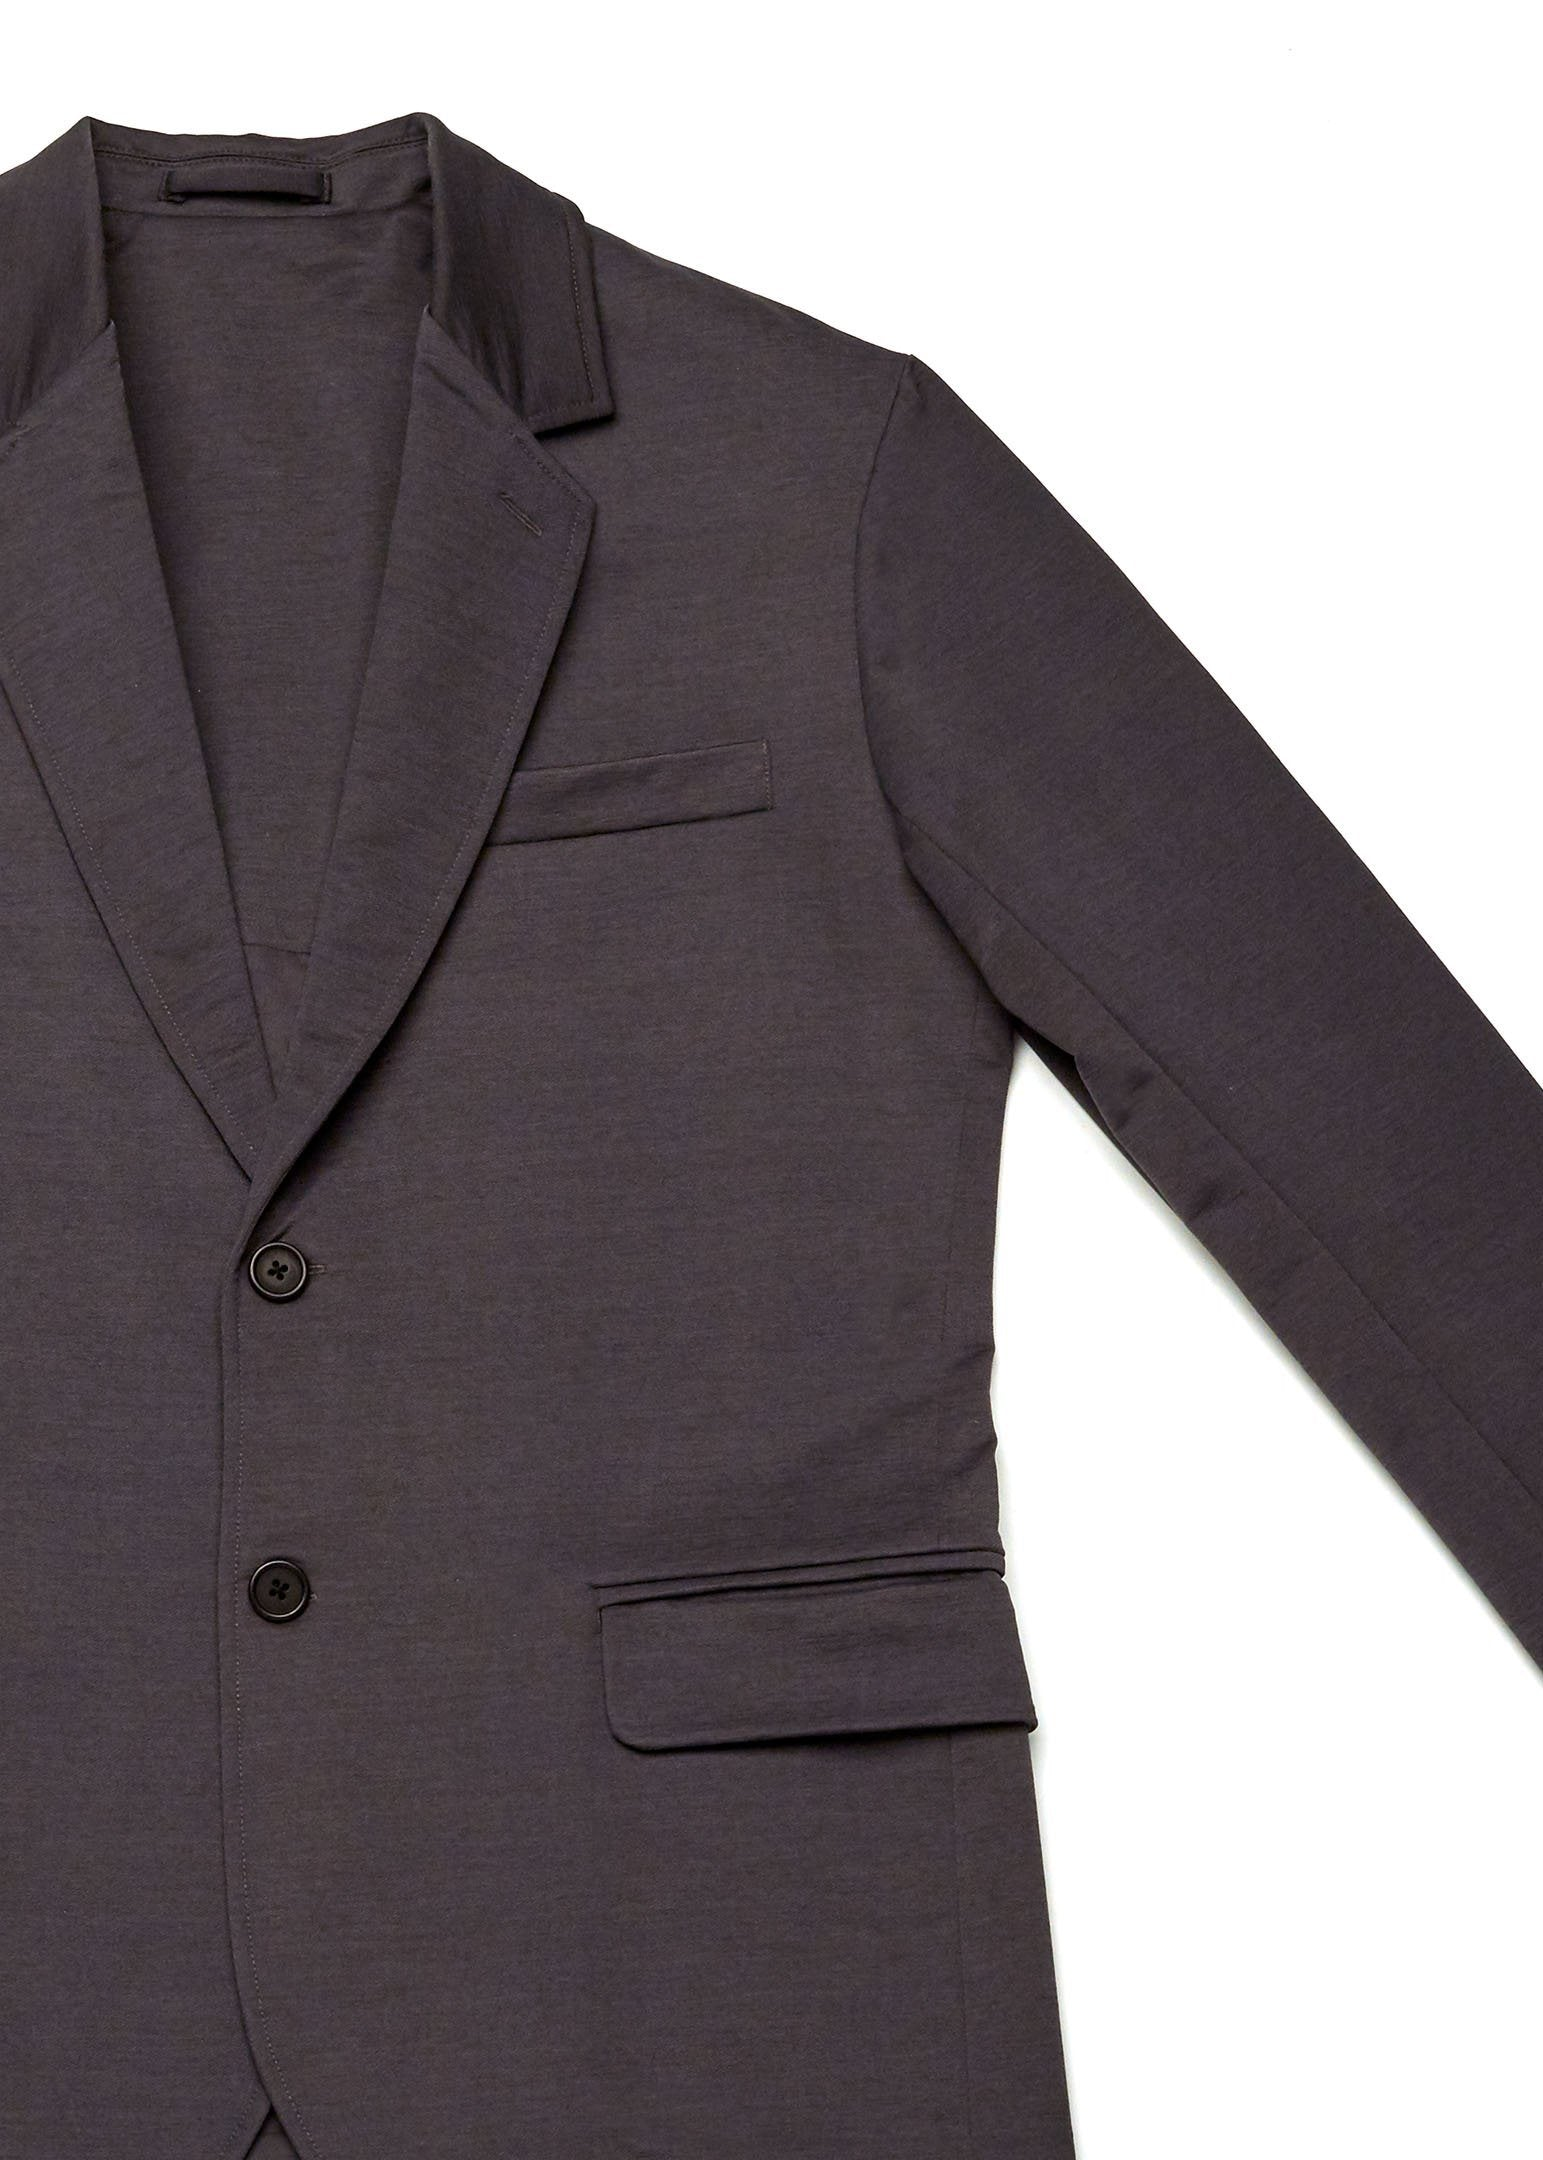 The Two Button Stretch Suit Jacket | Charcoal Grey